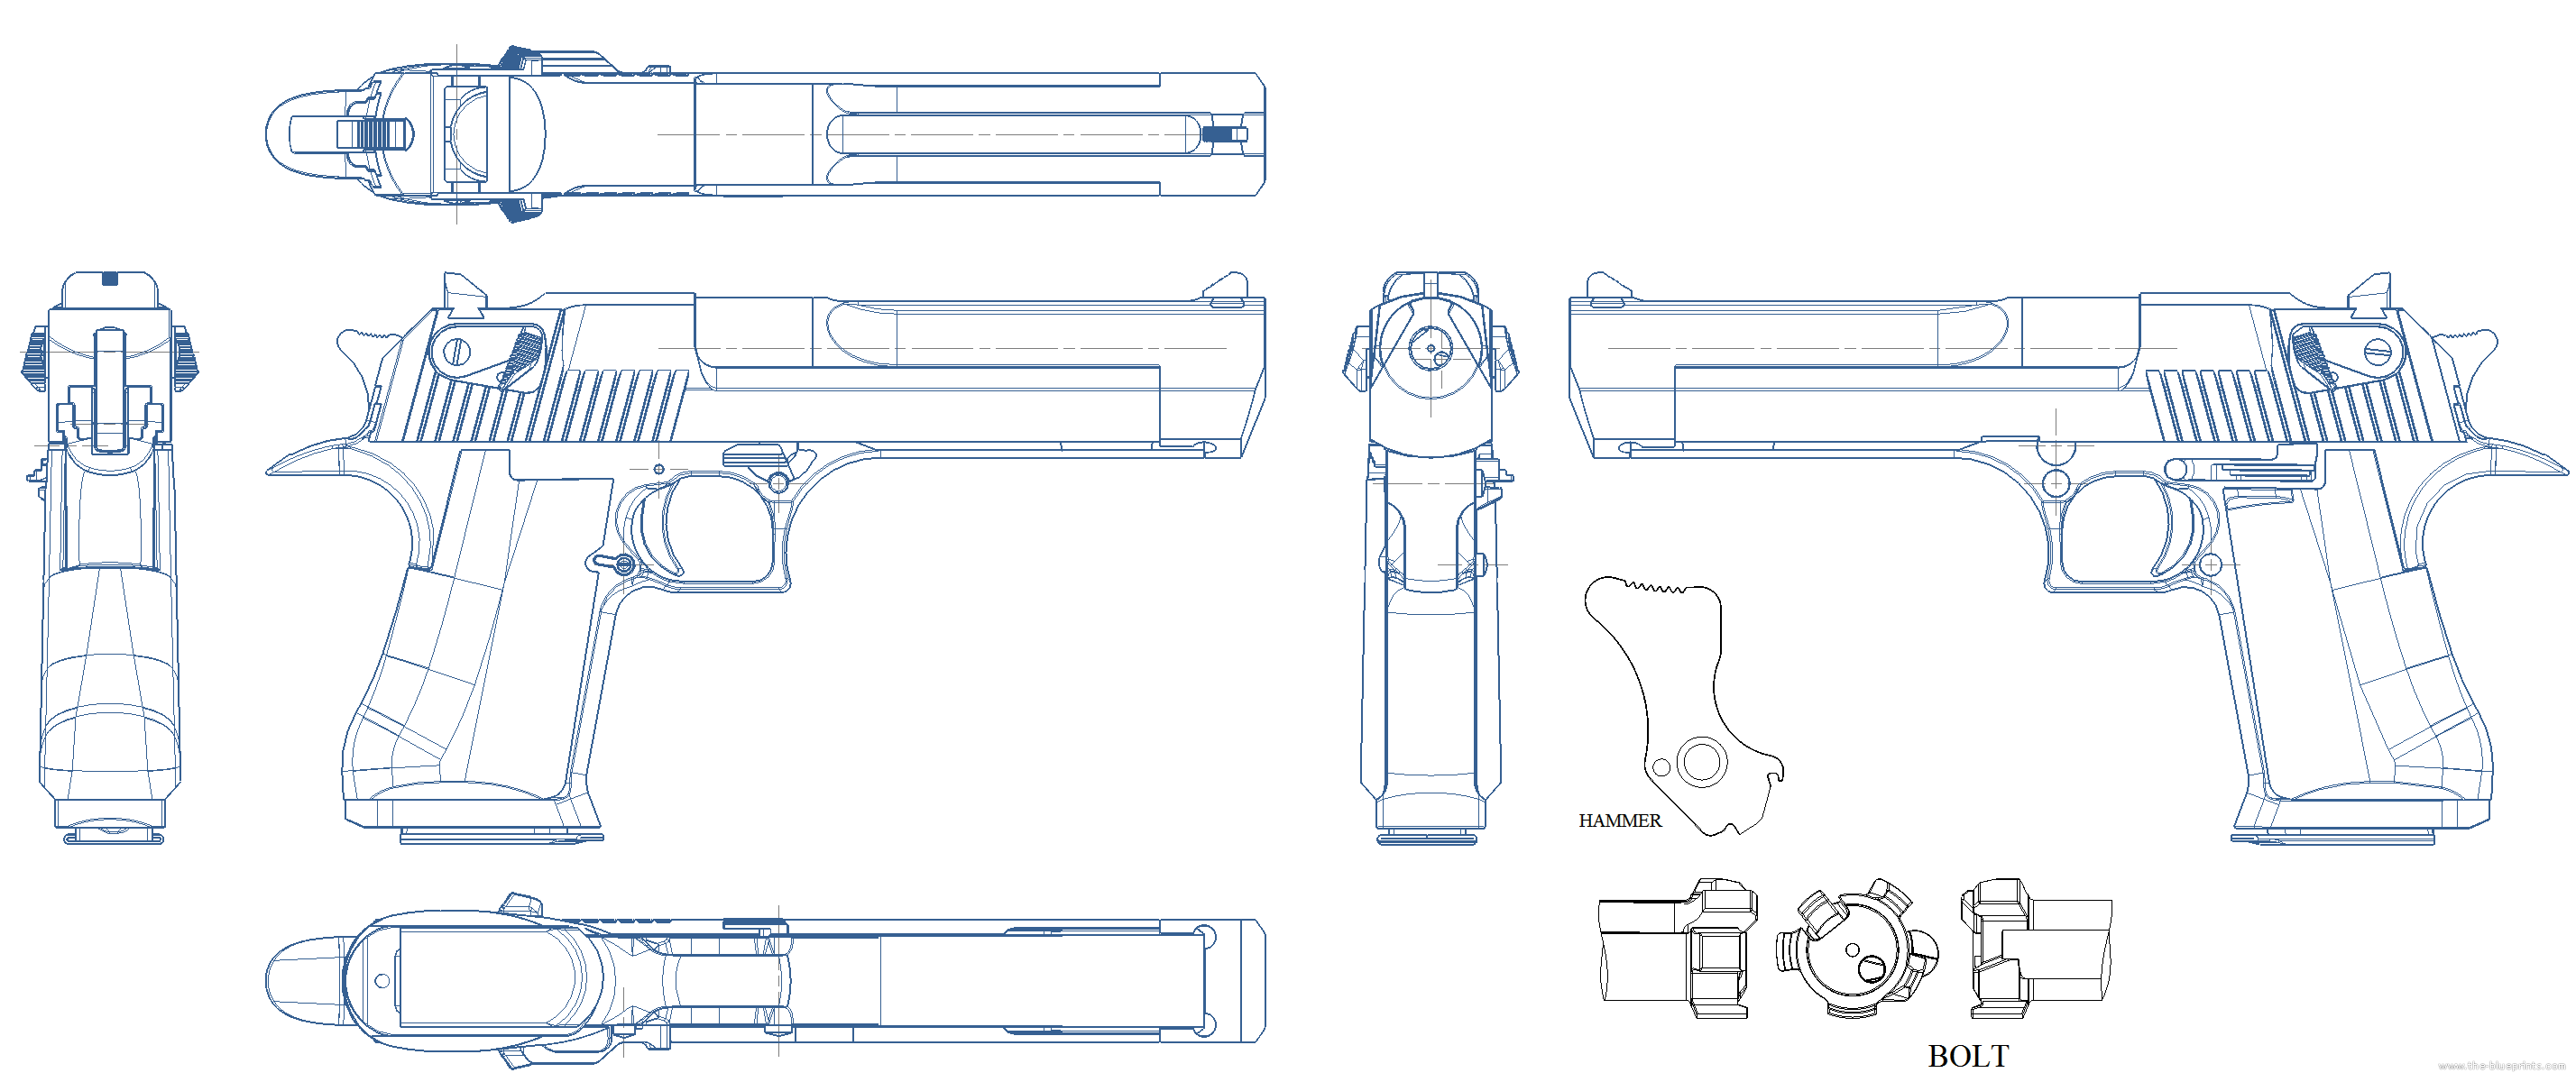 fb93cbc2c62cec60c84e7f09806572d7 Walther Ppk Schematic on magnum research baby eagle schematic, sig p220 schematic, walther pk380 schematic, walther 9mm schematic, kel-tec pf-9 schematic, walther p38 exploded view, sig sauer p232 schematic, taurus tcp schematic, sig sauer p228 schematic, walther ppq schematic, taurus pt945 schematic, walther ppx schematic, walther ppq disassembly diagram, kel tec p32 schematic, luger p08 schematic, fn 49 schematic, kimber ultra carry schematic, sig p230 schematic, hk p30 schematic, sig p239 schematic,